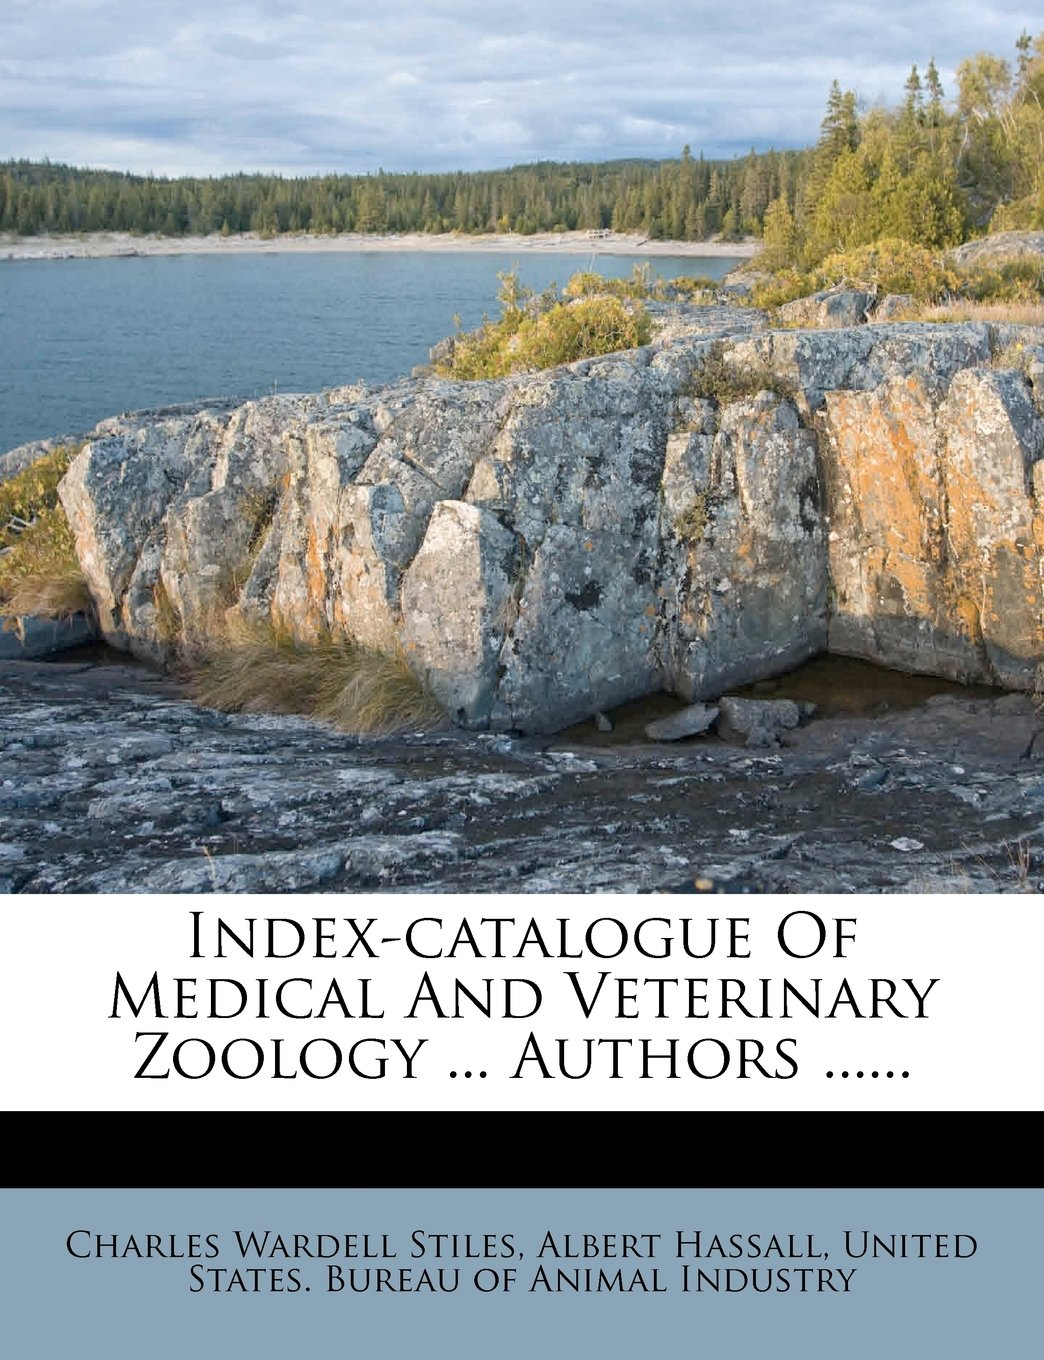 Download Index-catalogue Of Medical And Veterinary Zoology ... Authors ...... (French Edition) PDF